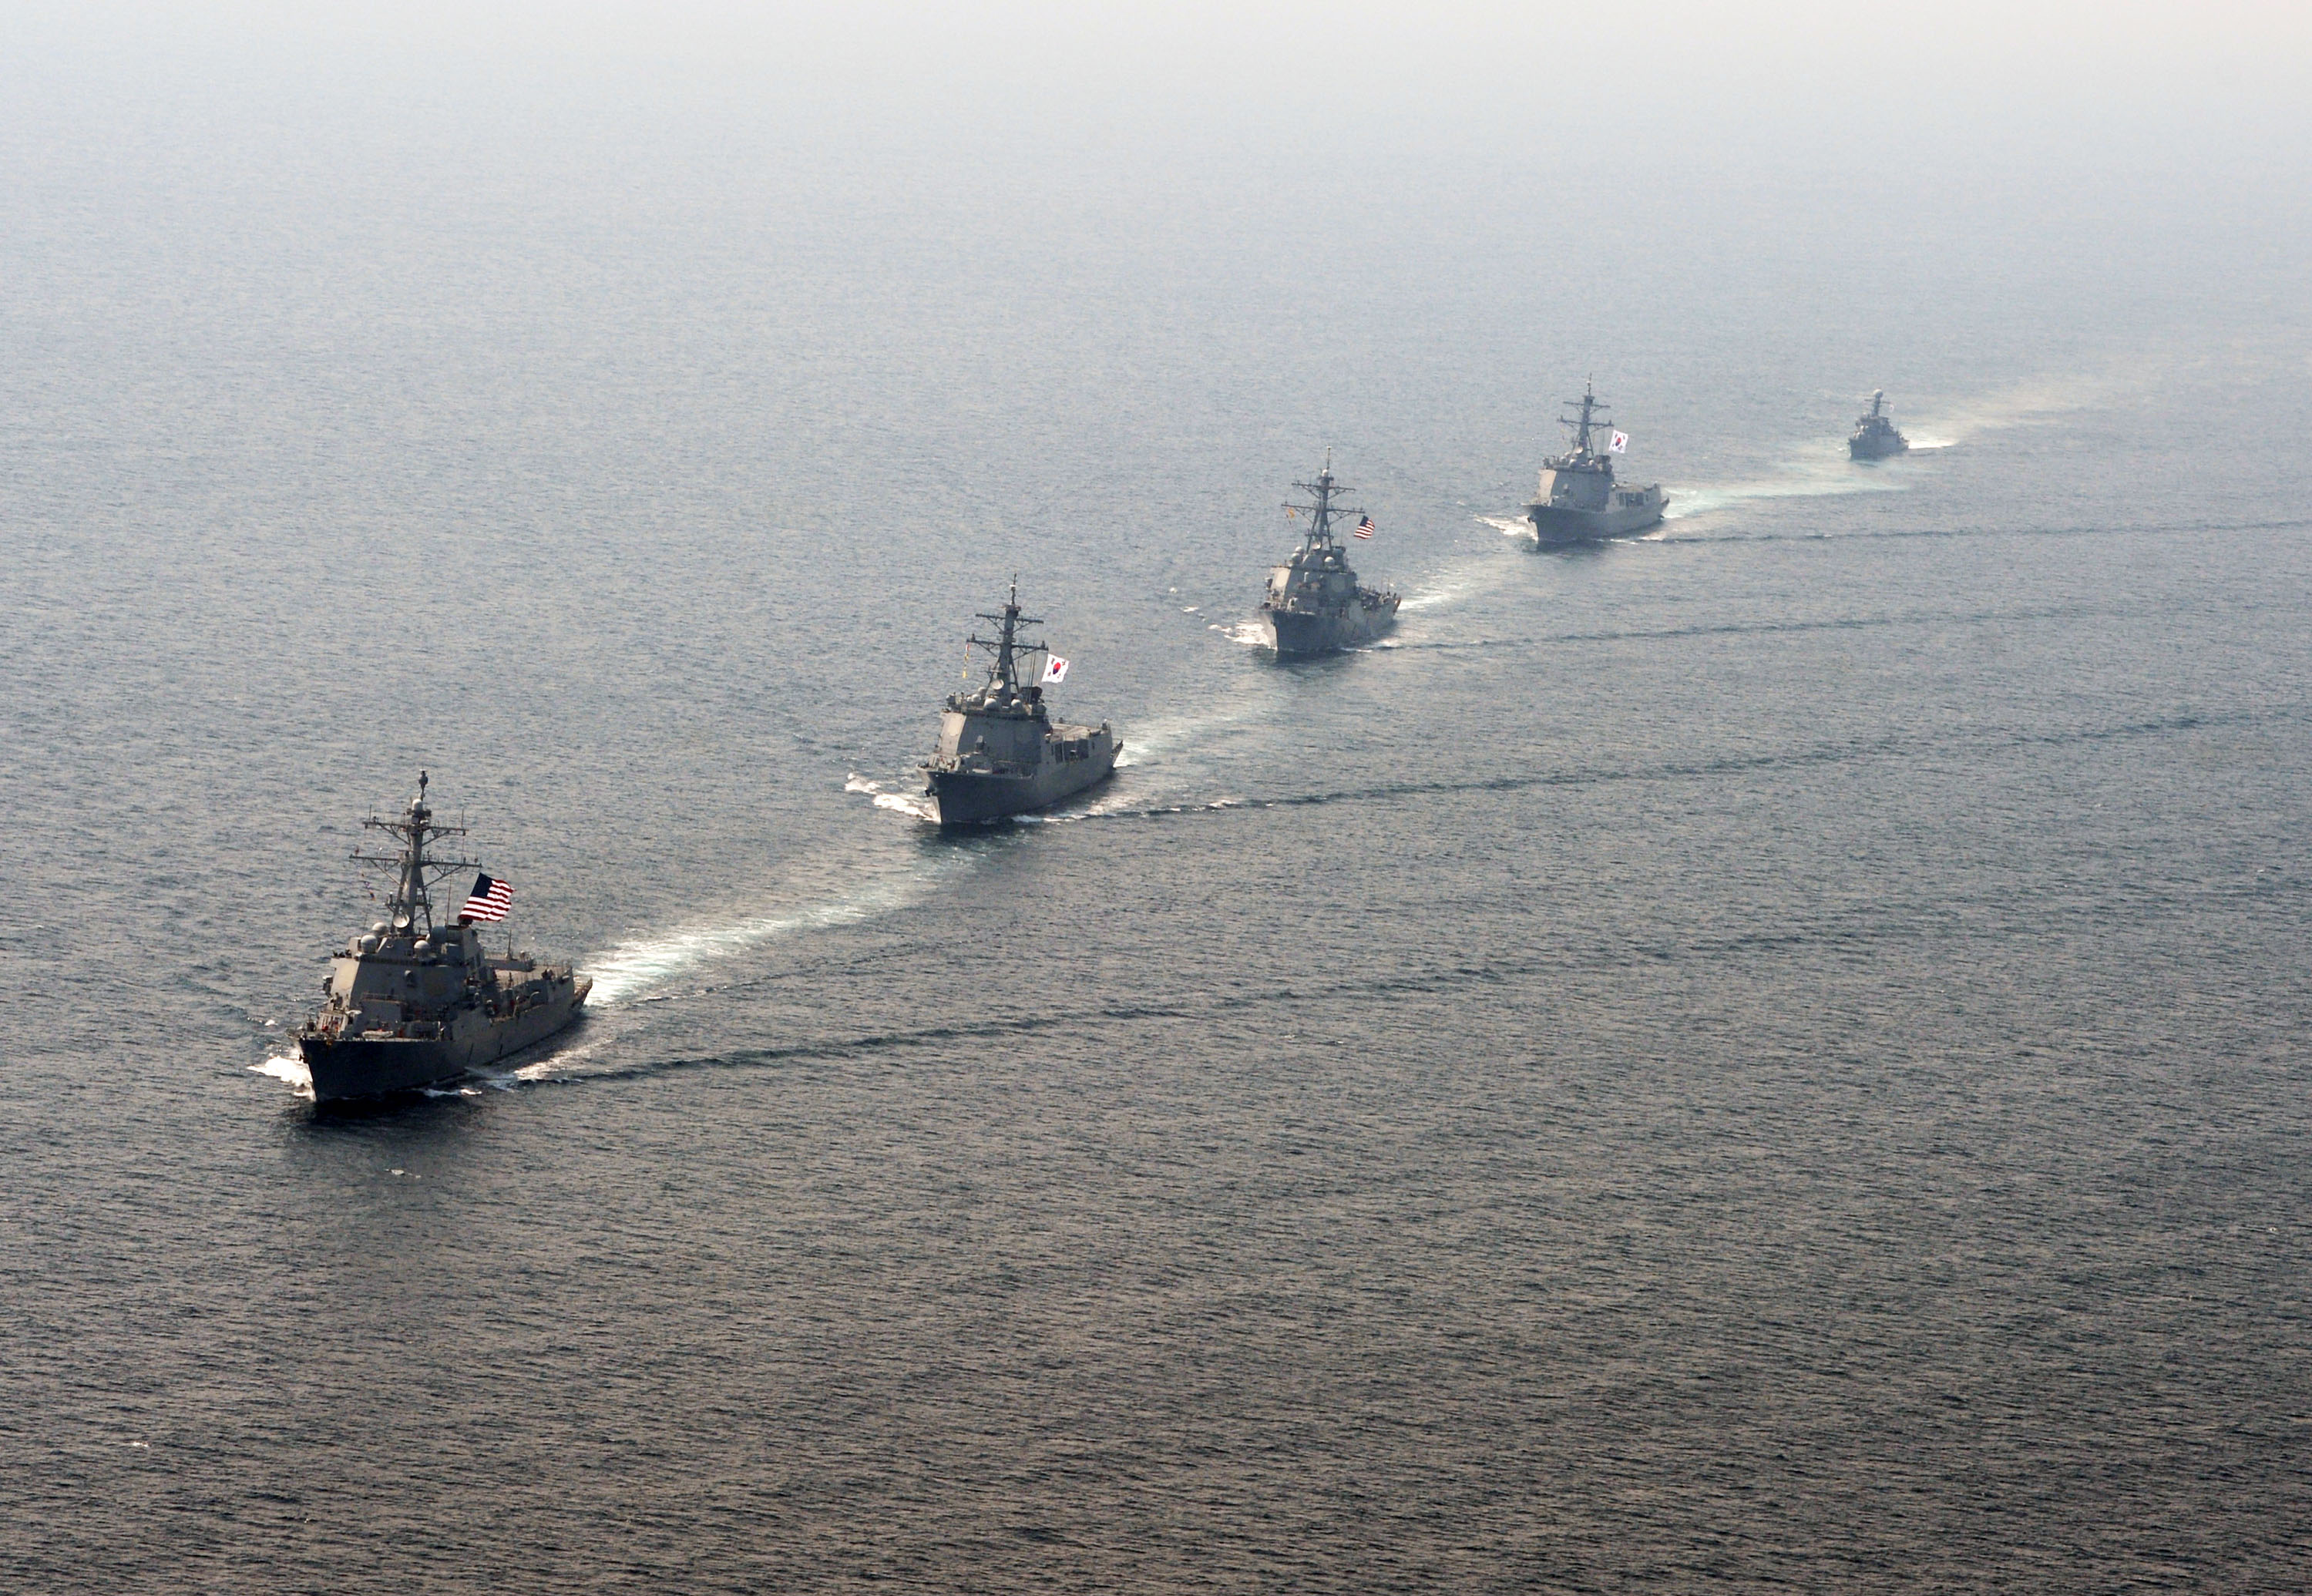 The guided-missile destroyer USS Momsen (DDG 92), left, Republic of Korea destroyer ROKS Seoae Ryu Seong-ryong (DDG-993), guided-missile destroyer USS Decatur (DDG 73), Republic of Korea destroyer ROKS Yulgok Yi (DDG-992) and Republic of Korea patrol craft ROKS Kwang Myung (PCC-782) steam in formation during a bilateral maneuvering exercise near the Korean Peninsula on May 21, 2016. US Navy photo.